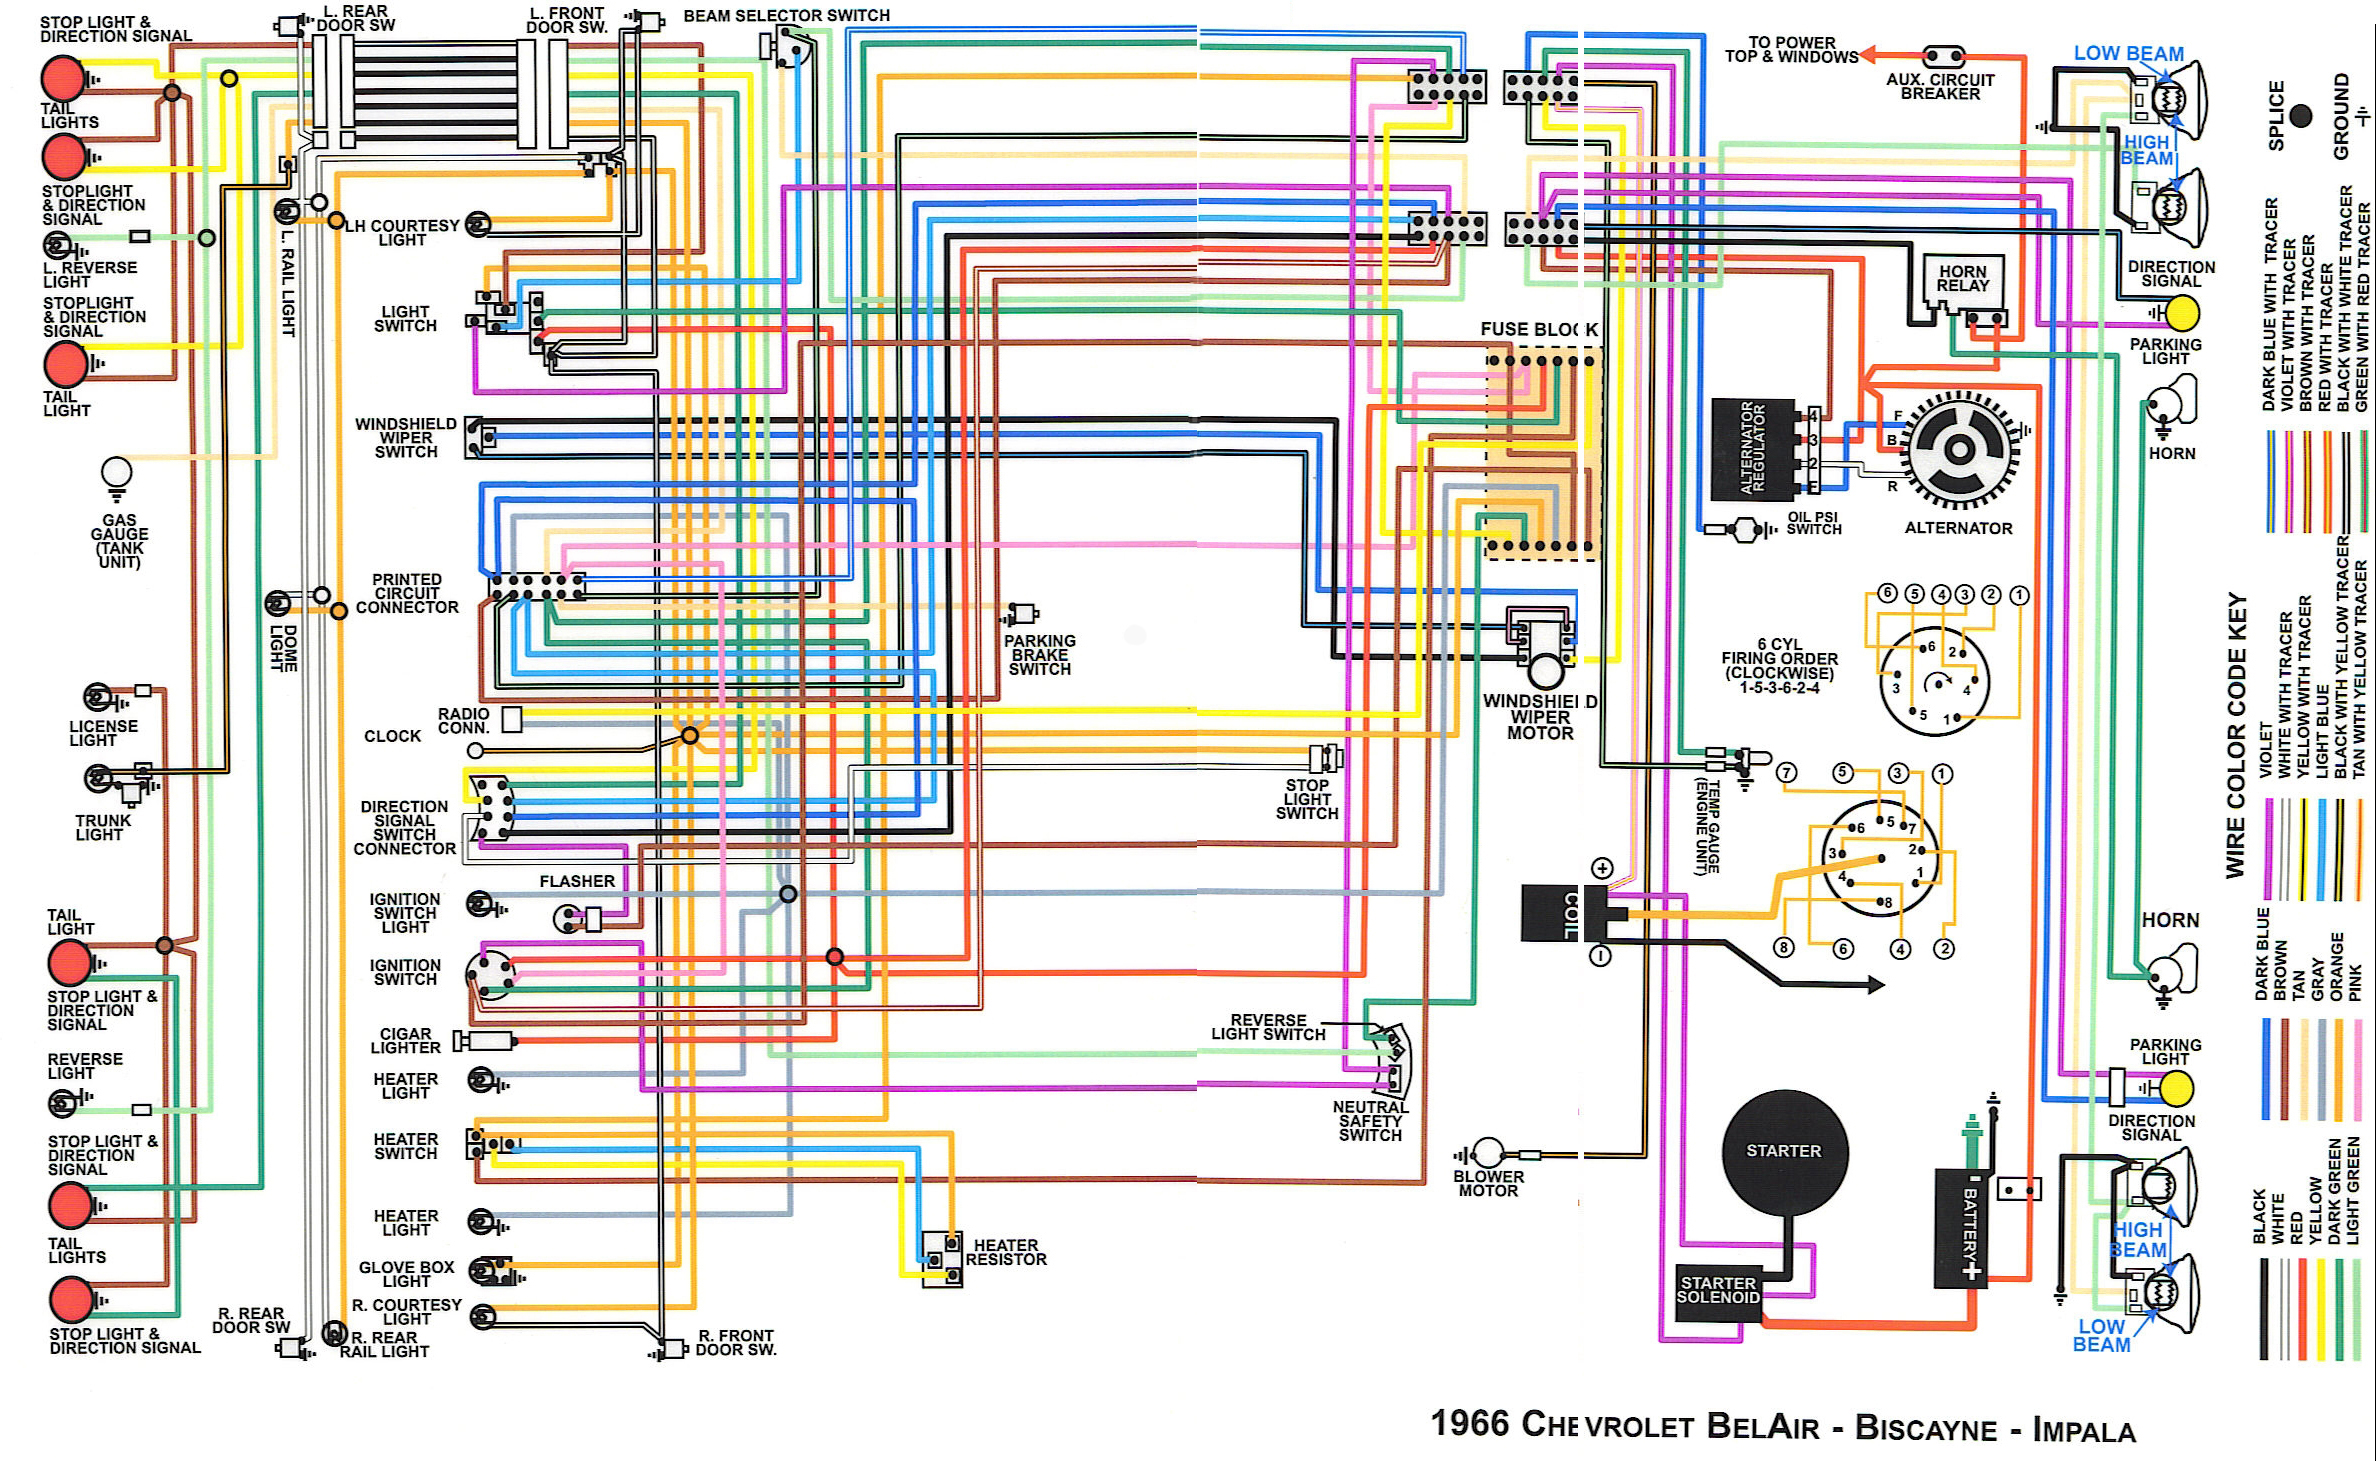 wd wiring diagram for 1964 impala readingrat net 2004 Impala Radio Wiring Diagram at gsmportal.co